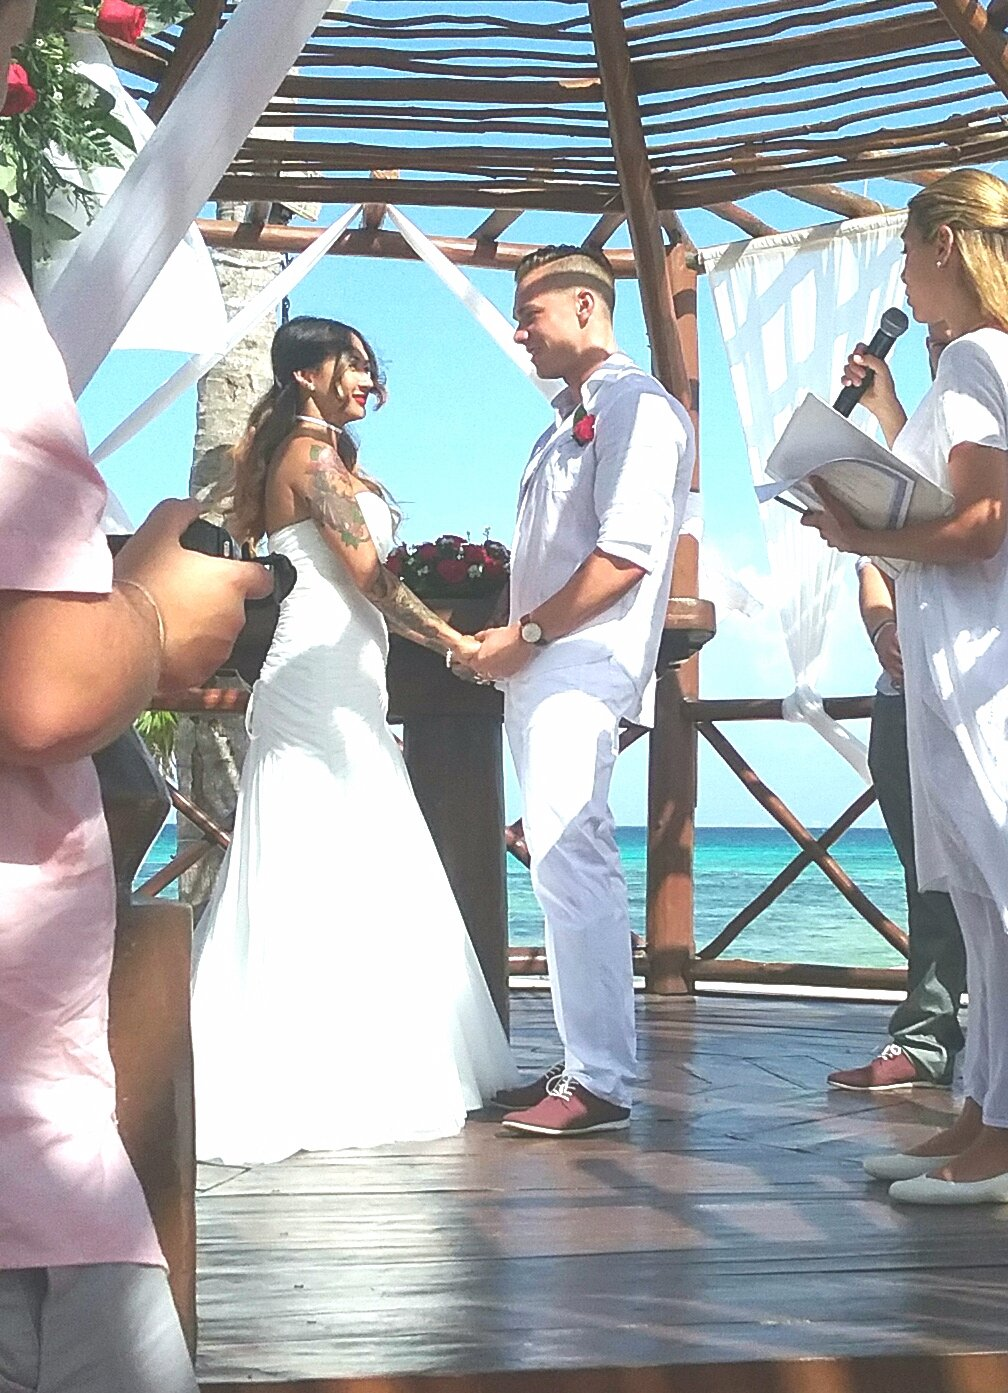 A beach wedding held under a wooden structure interlaced with red roses and white flimsy drapes